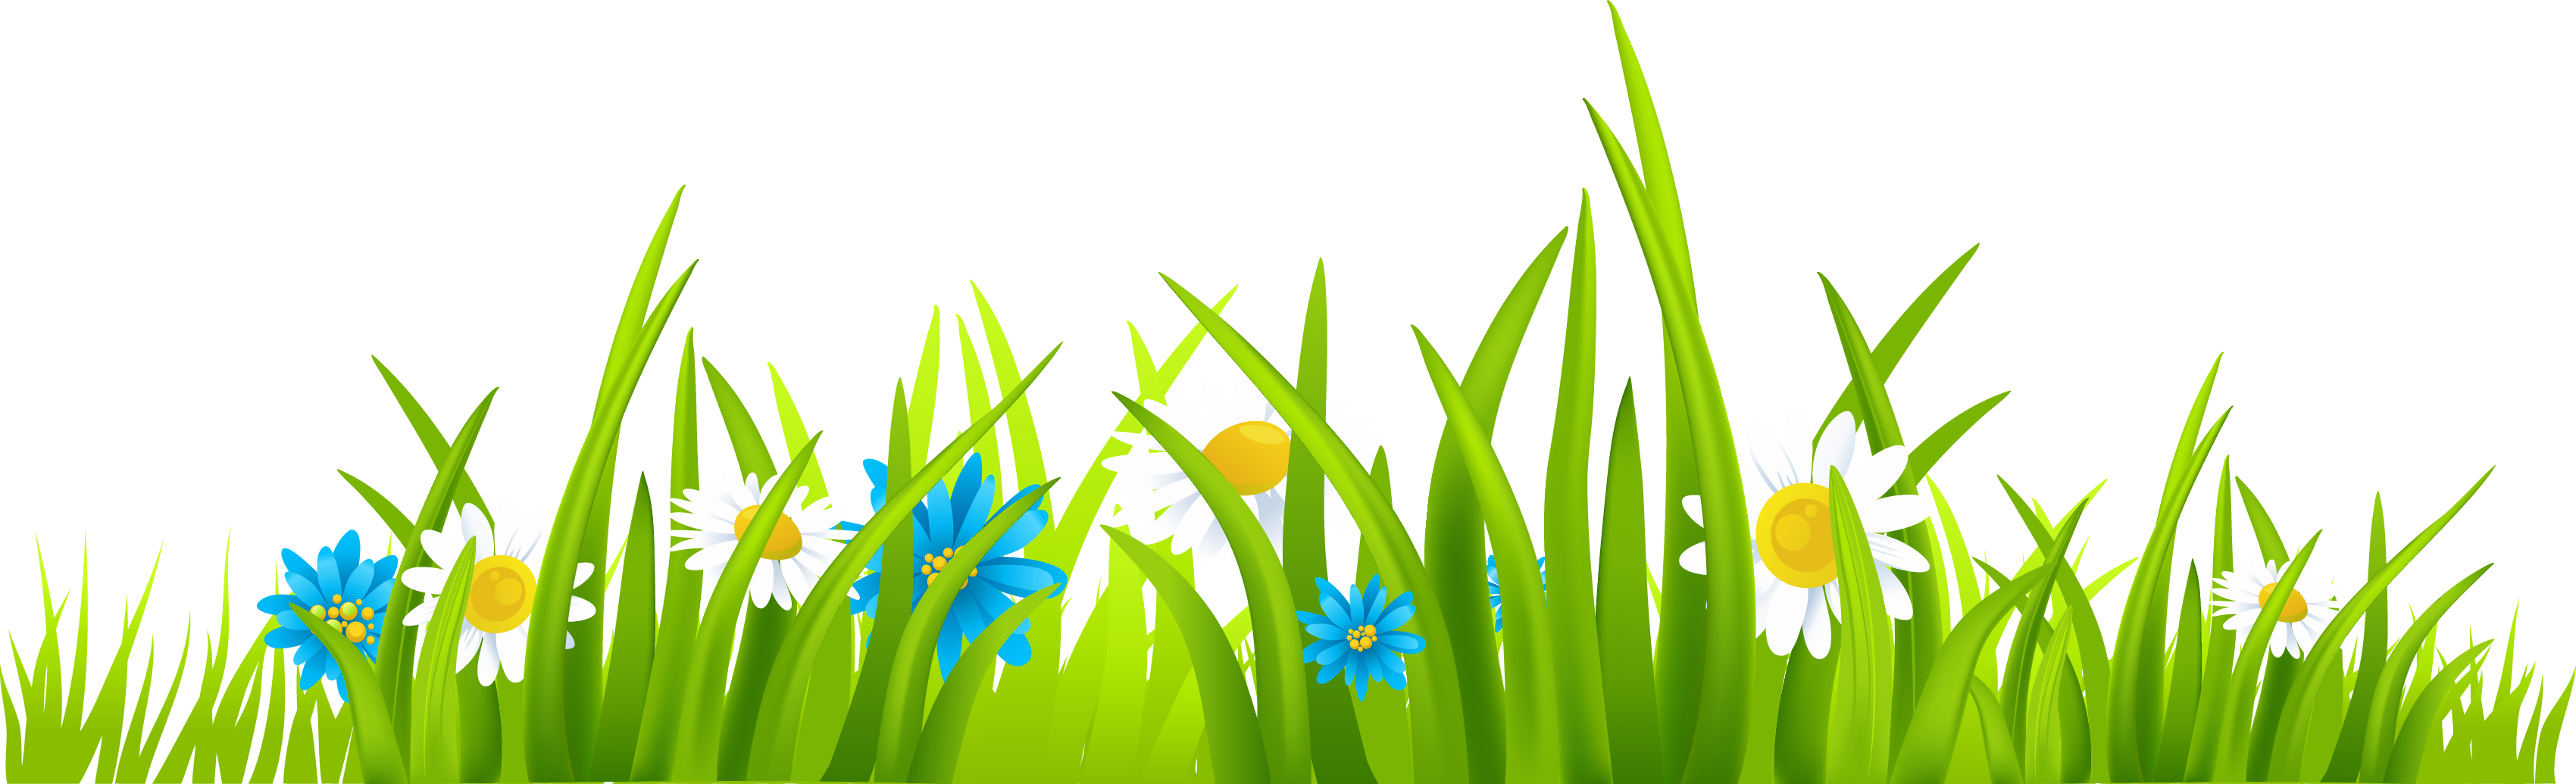 Clipart Letters Grass Clipart Letters Grass Transparent Free For